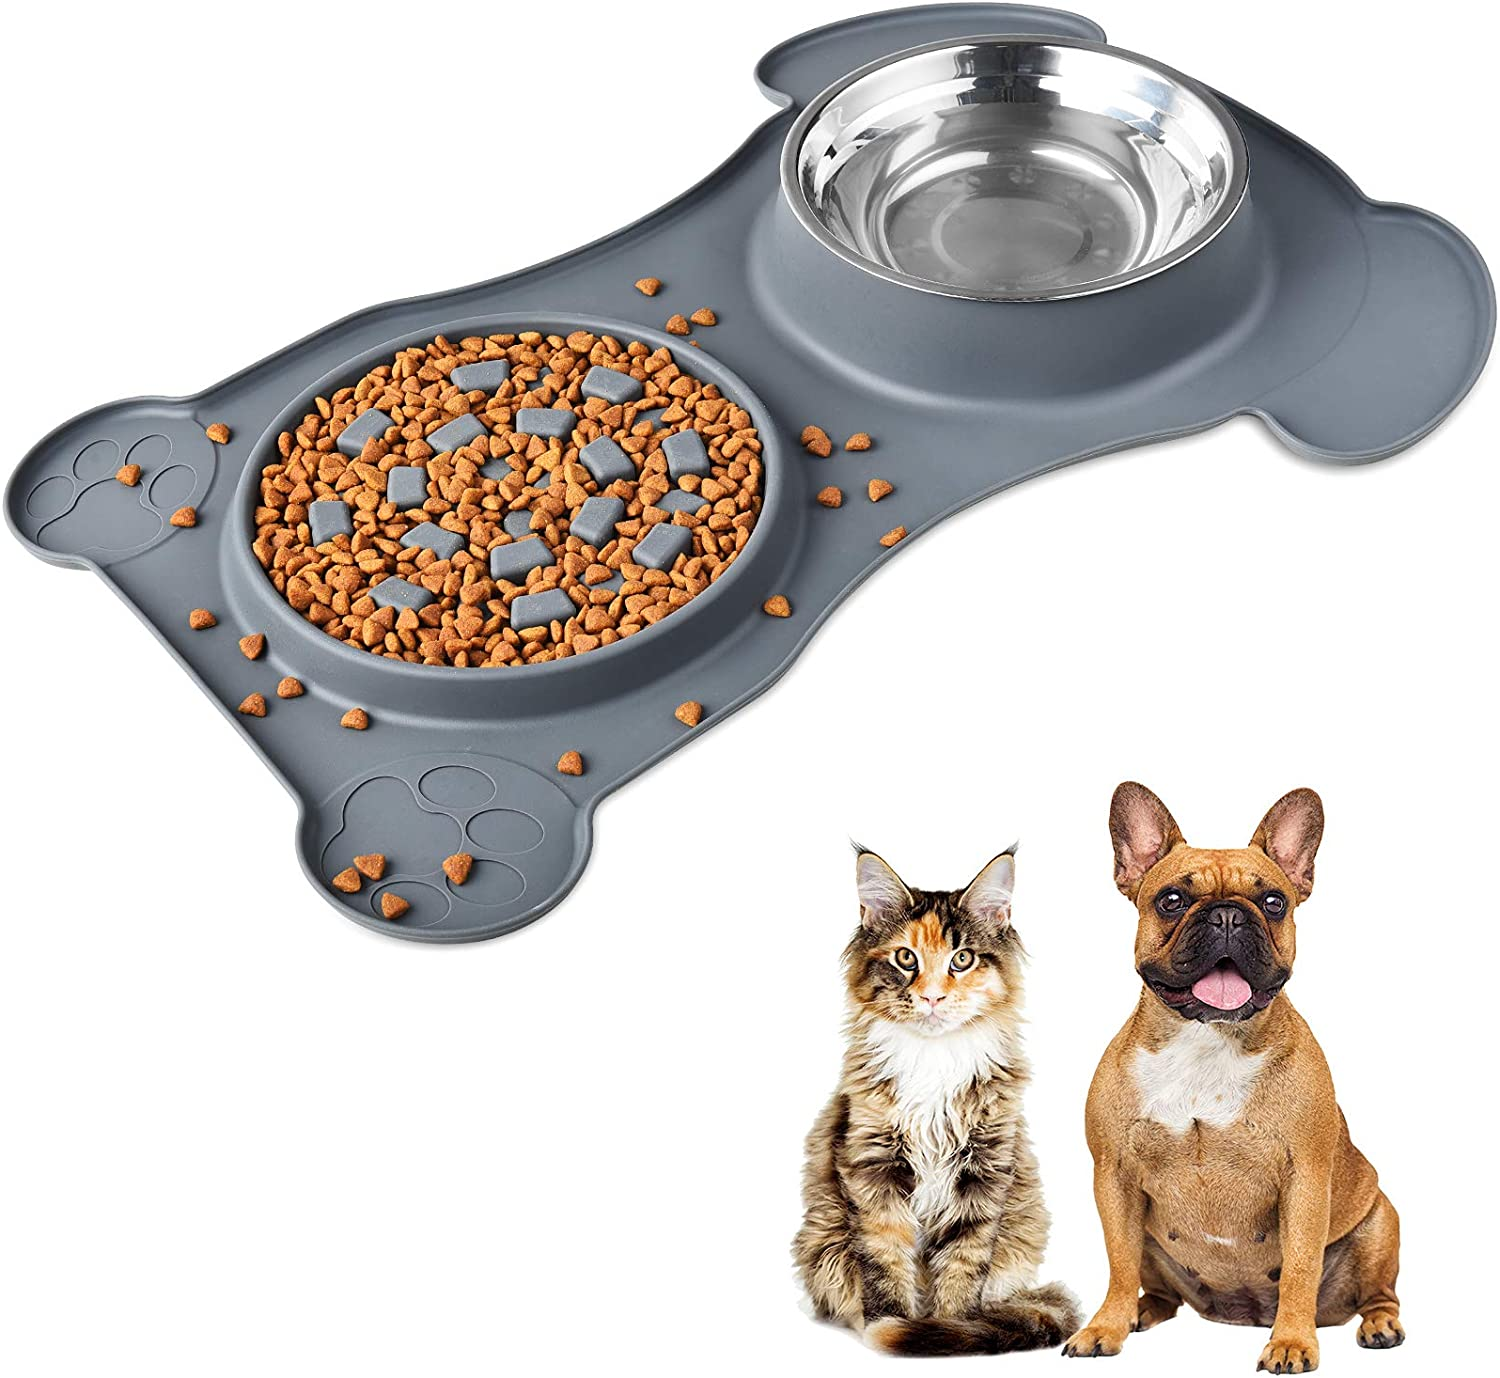 Dog Cat Food Water Bowl - Stainless Steel Anti-Spill Anti-Skid Silicone Slow Feeder Bowl Mat Wet or Dry Food for Large & Small Pet Puppy Dog